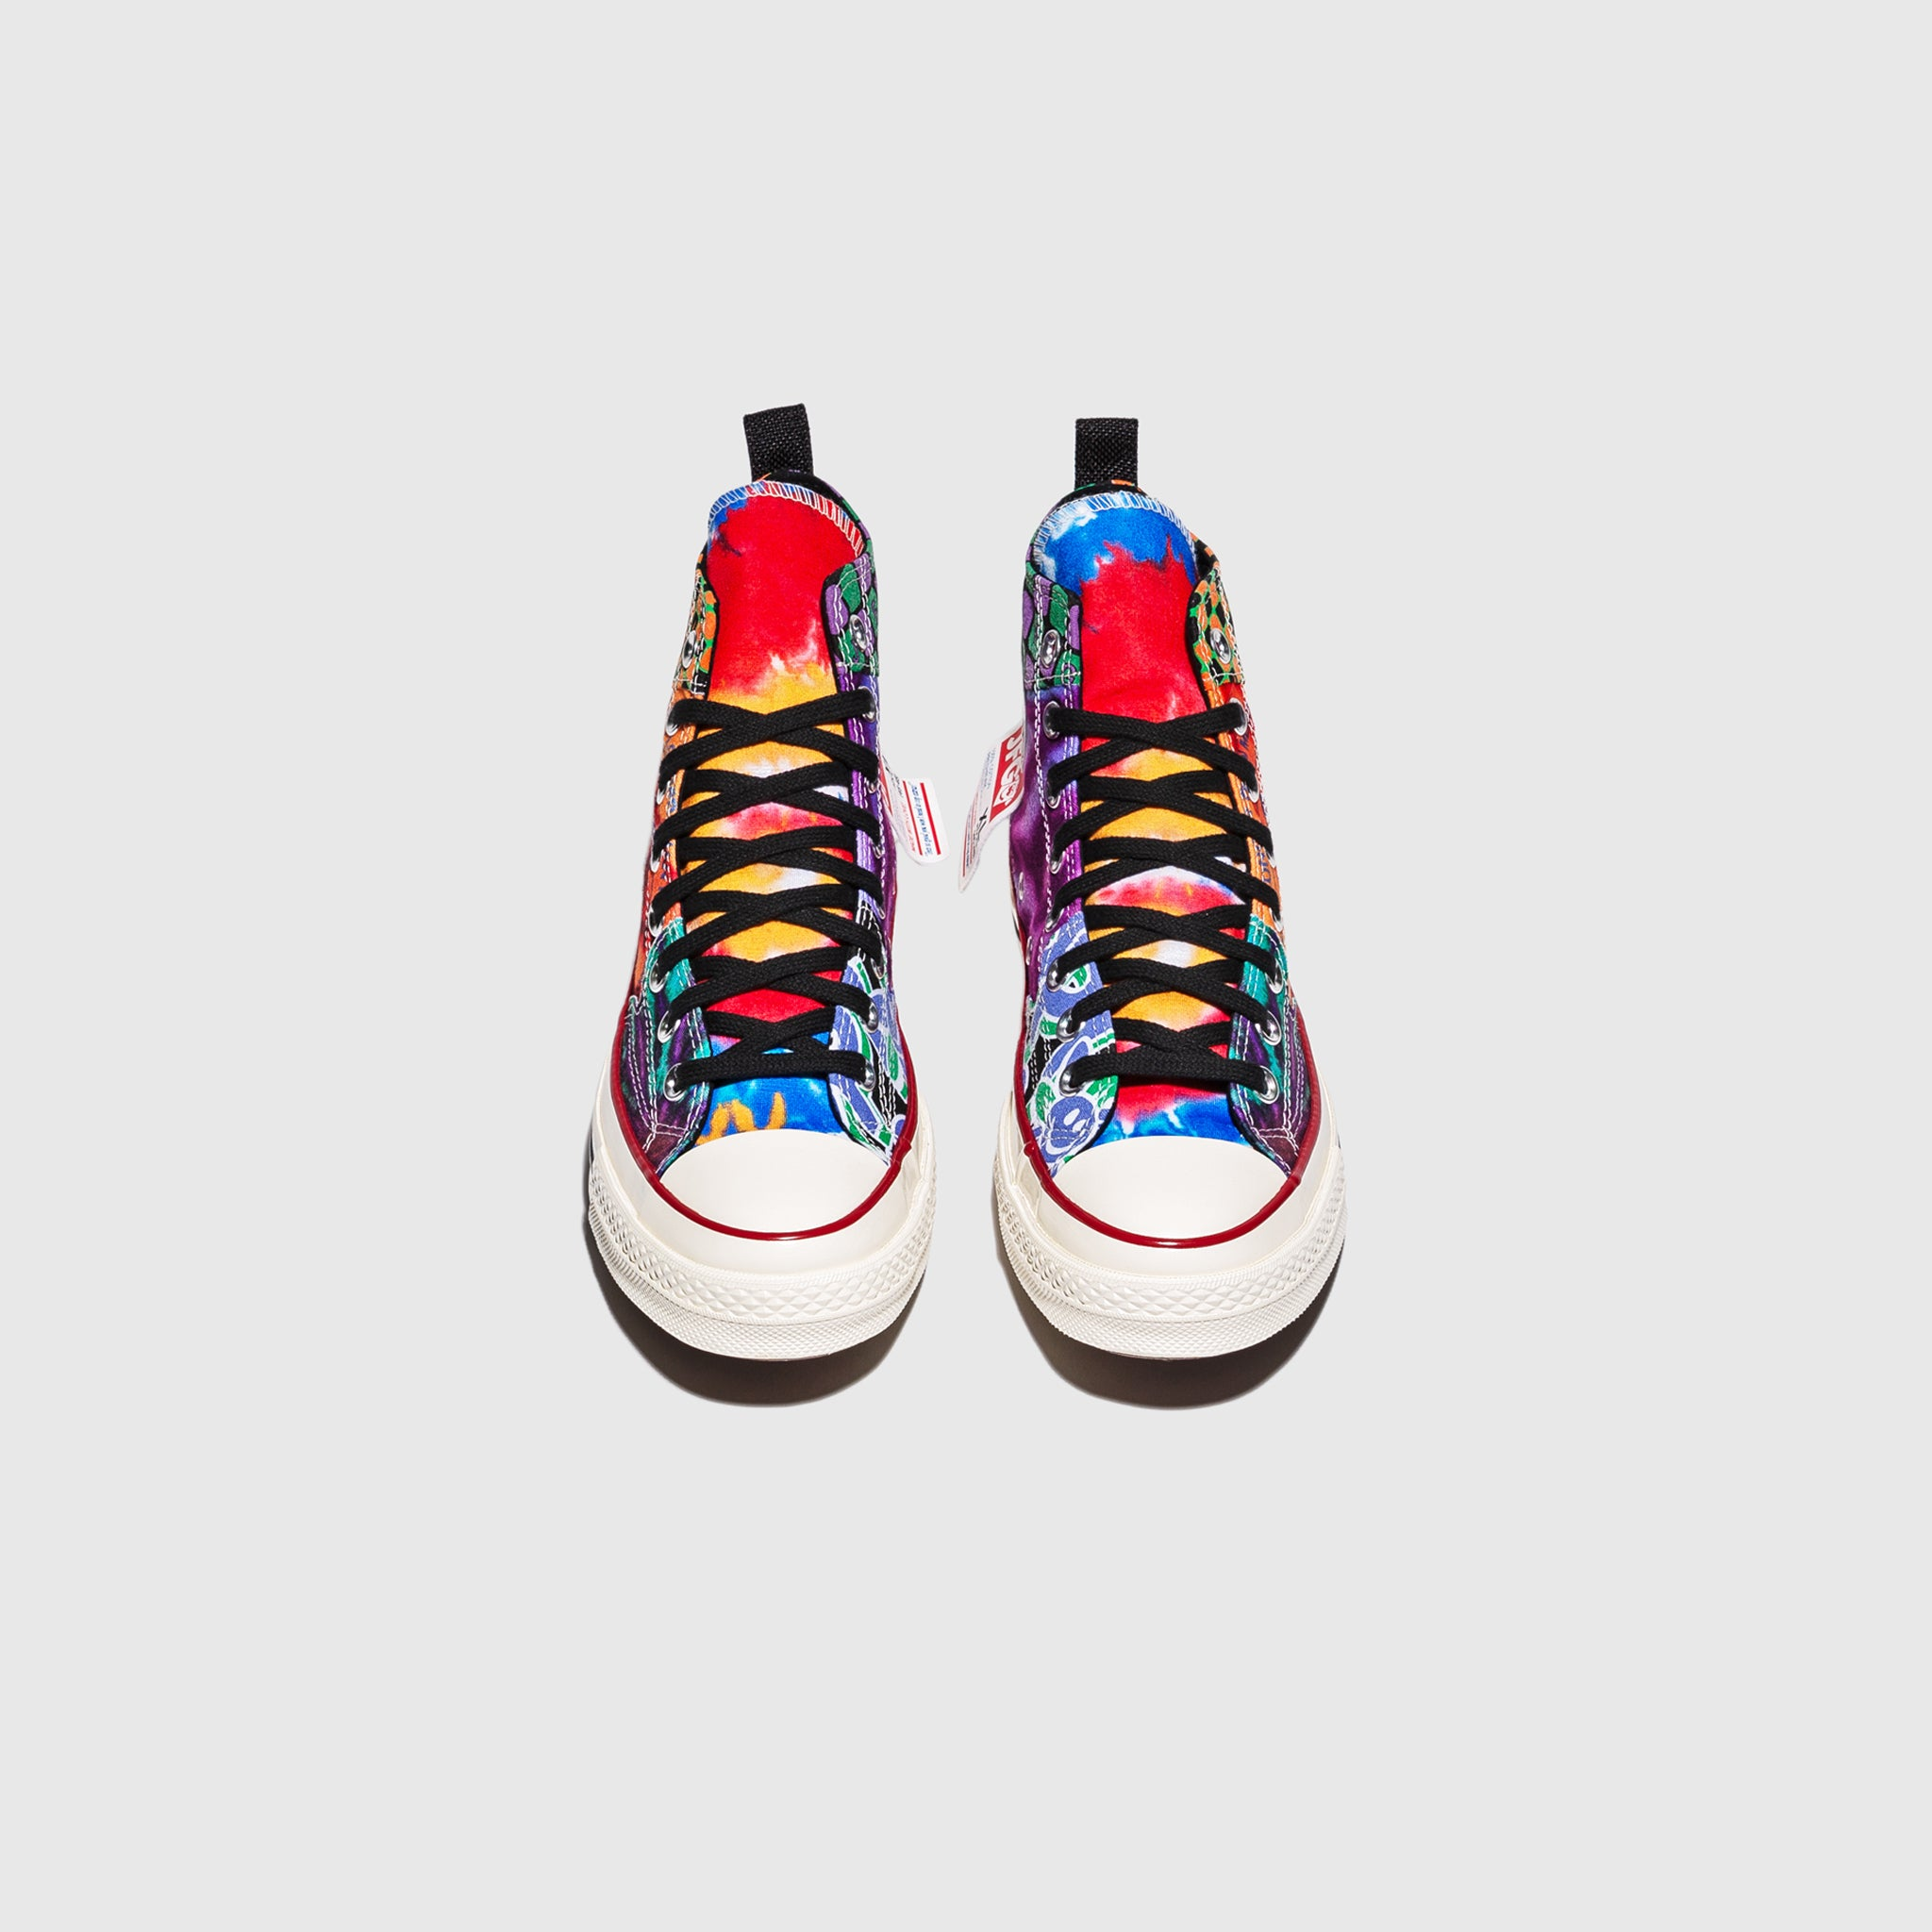 CONVERSE CHUCK '70 HI X JOE FRESH GOODS